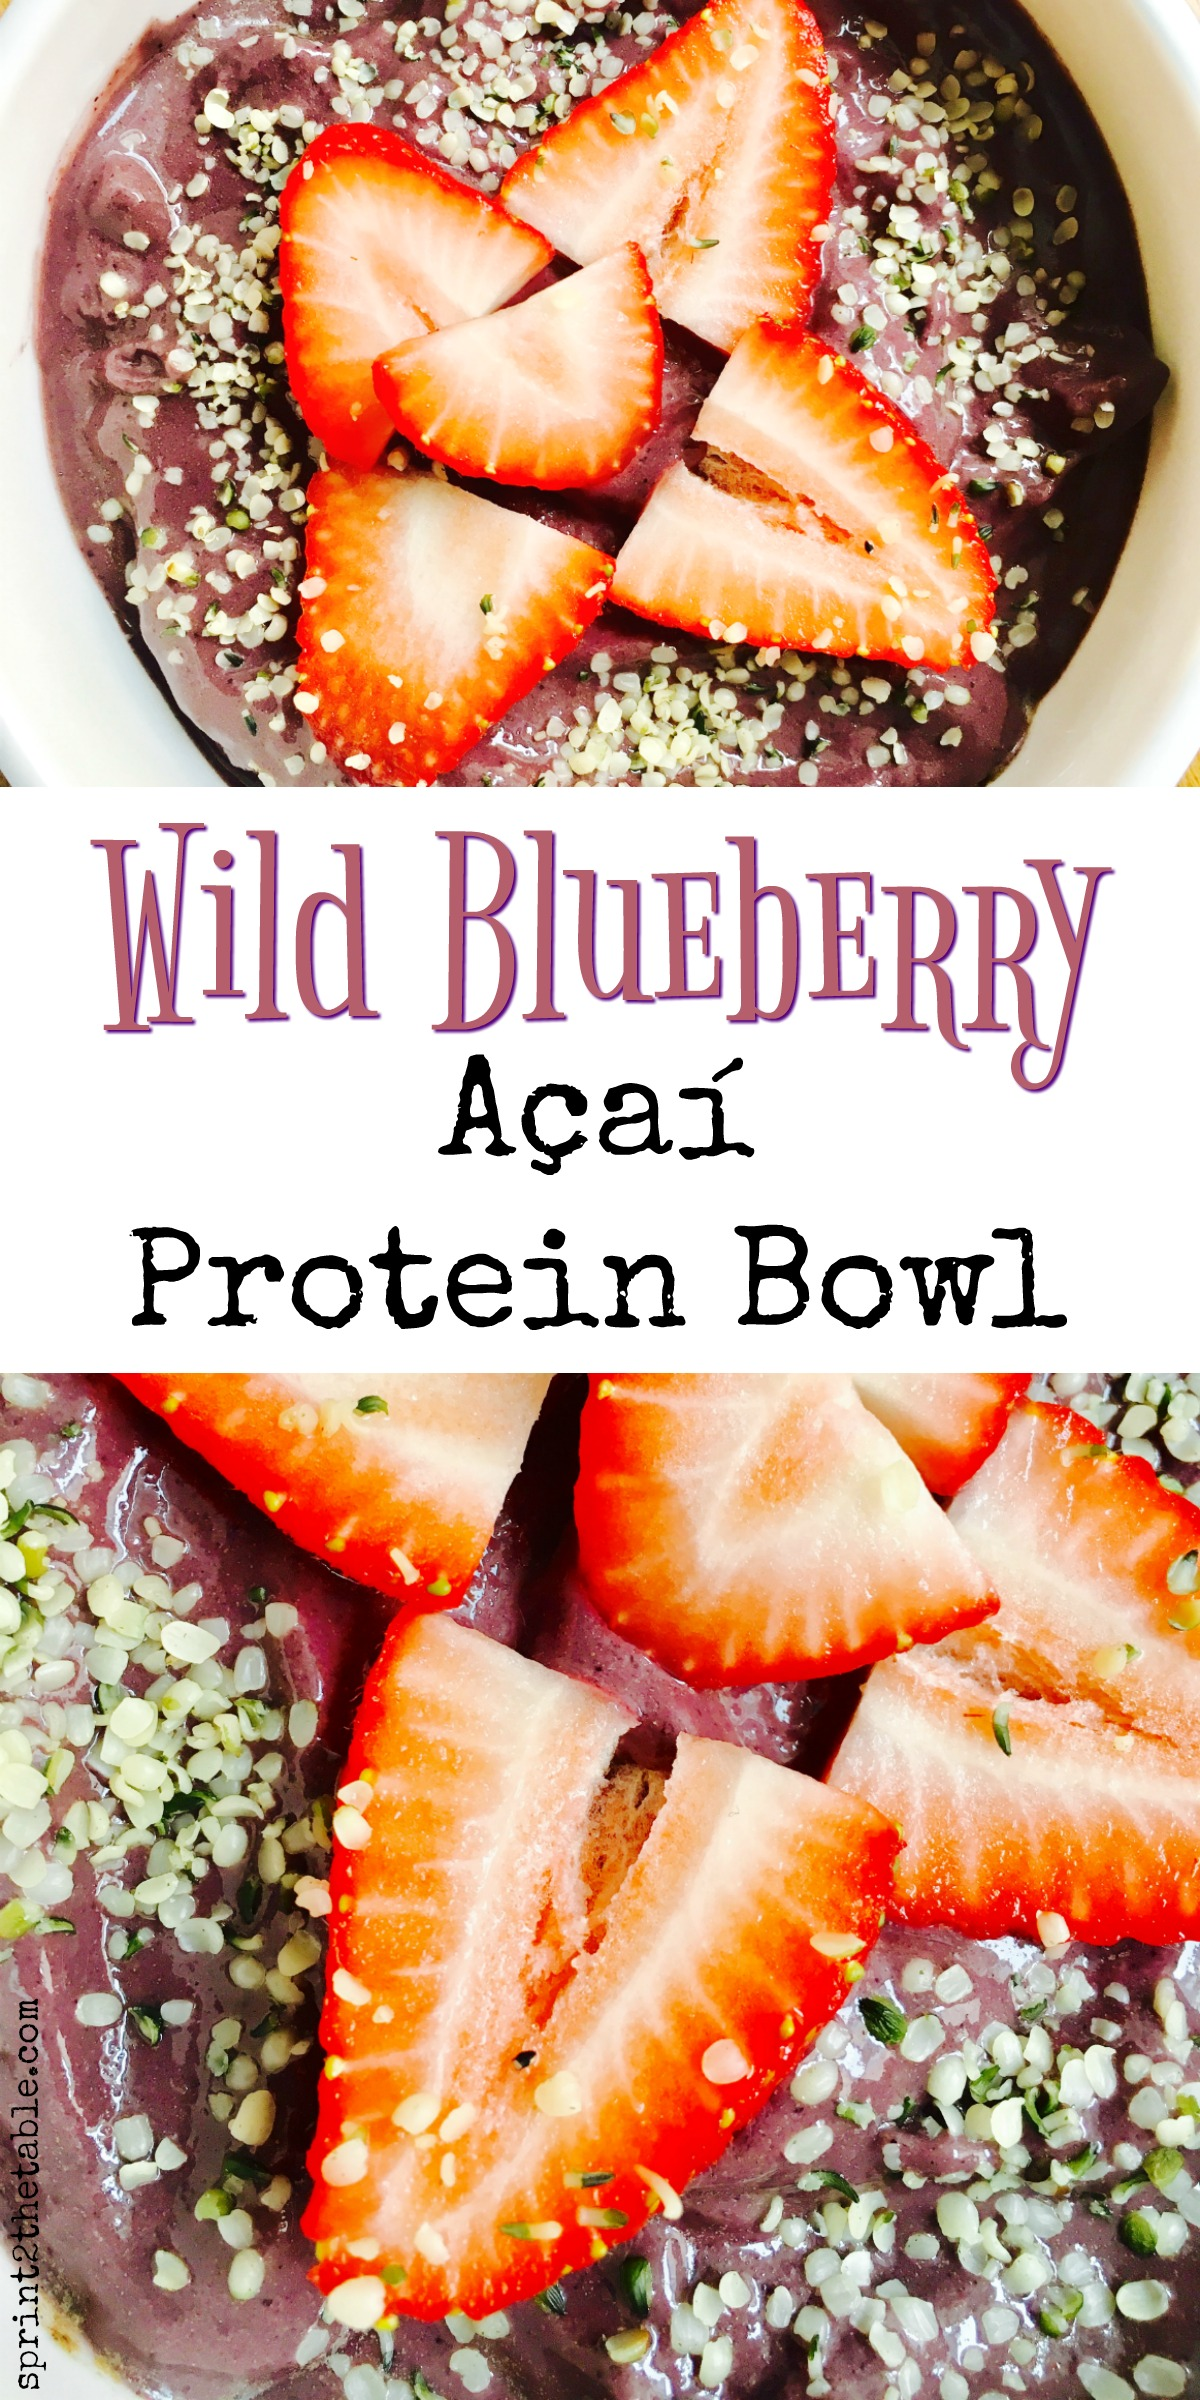 This homemade açaí bowl is packed with nutrients from wild blueberries, açaí, and protein. Enjoy one as a cool down post-workout, or as a healthy afternoon snack!